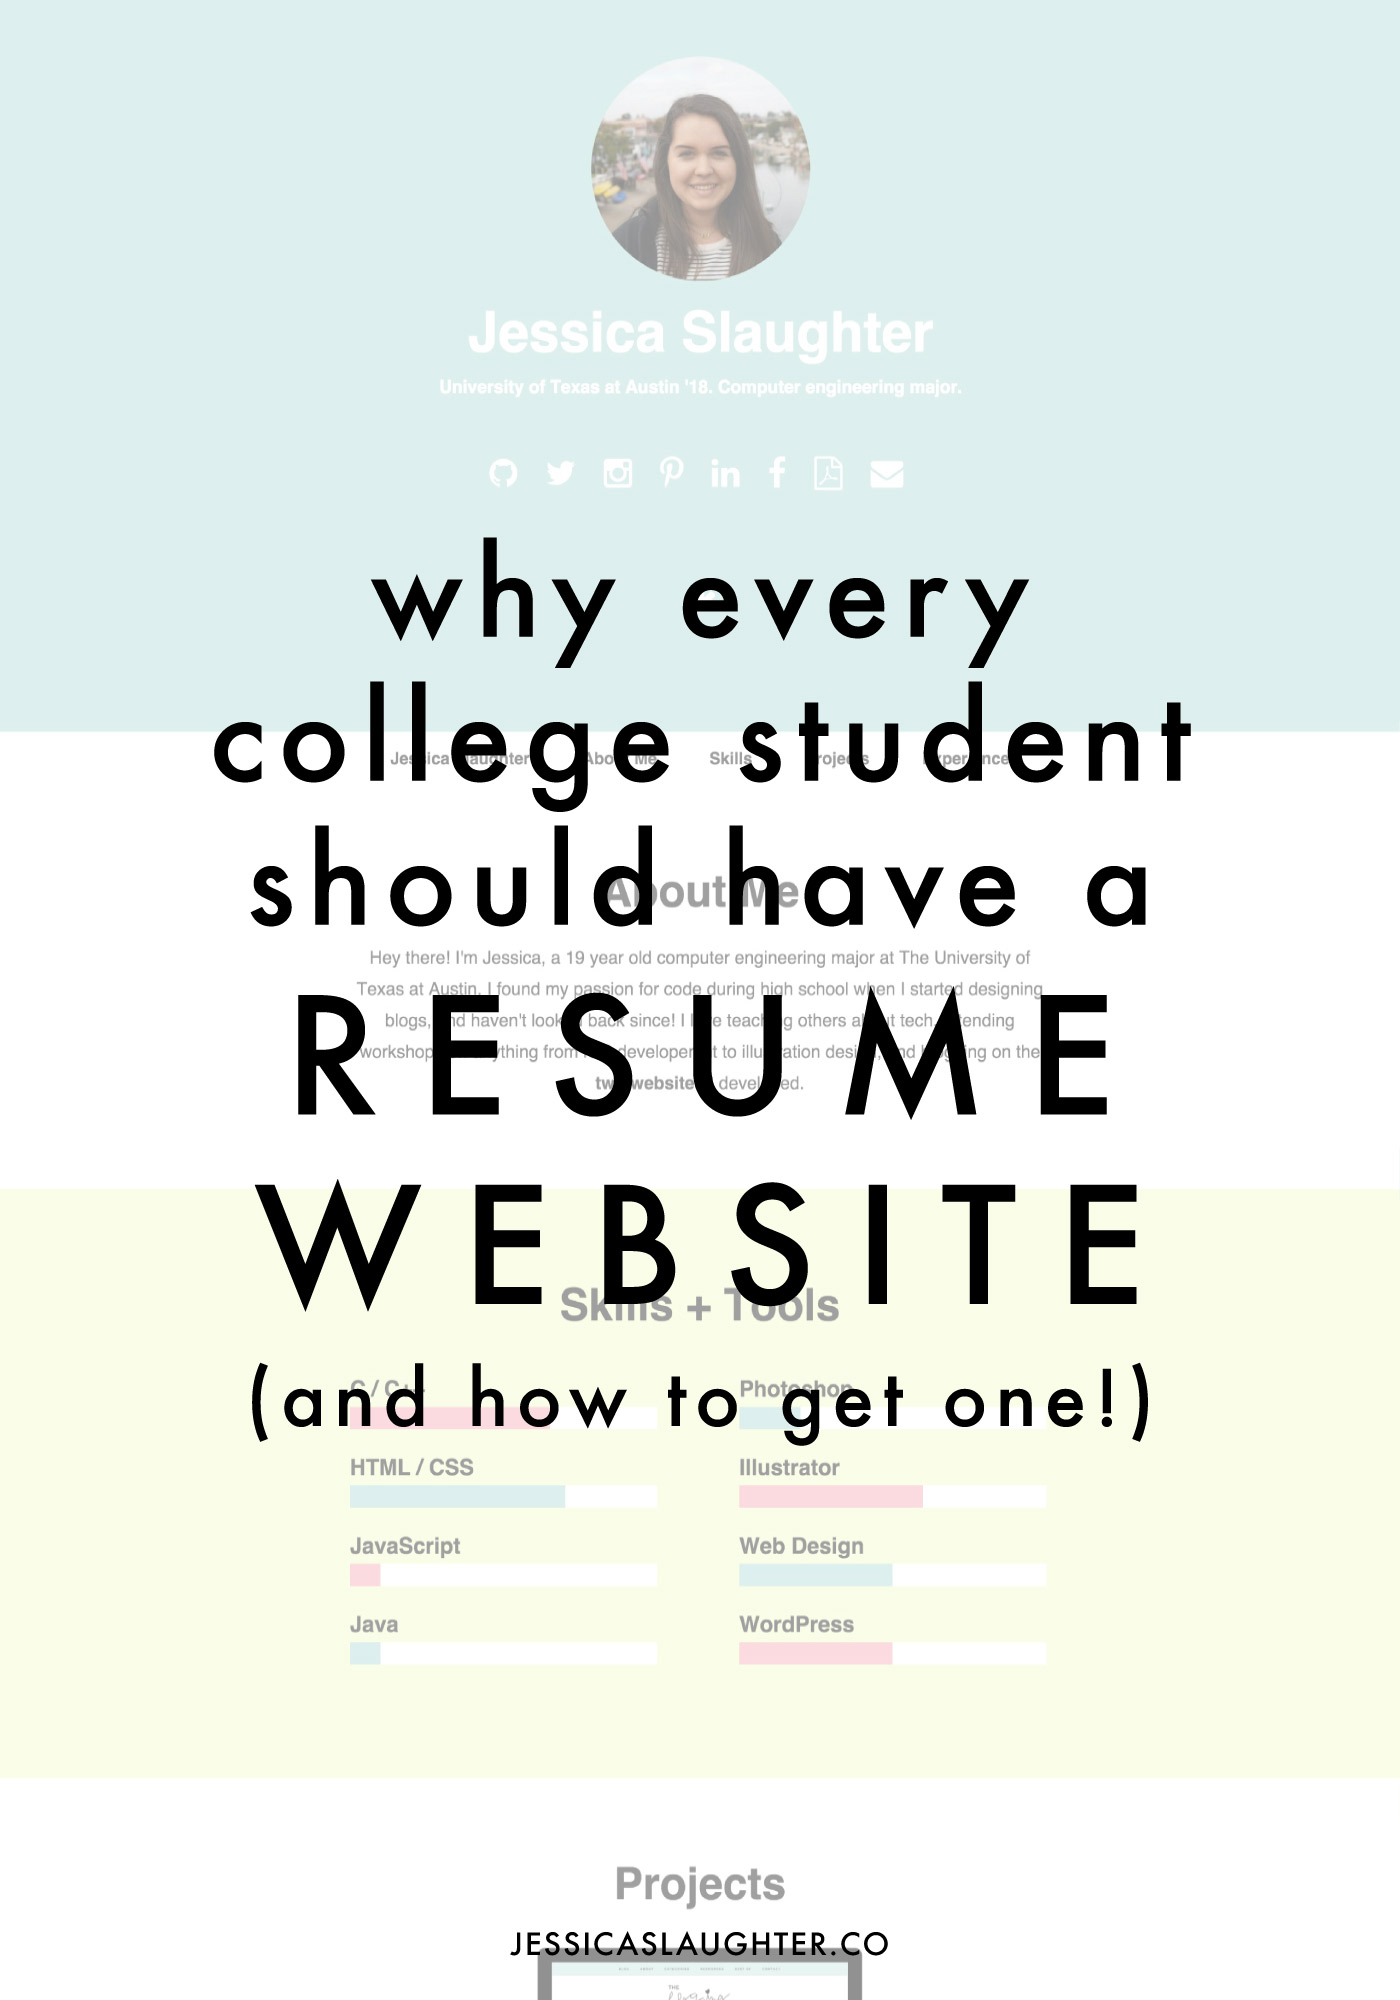 Why Every College Student Should Have A Resume Website   Jessica Slaughter